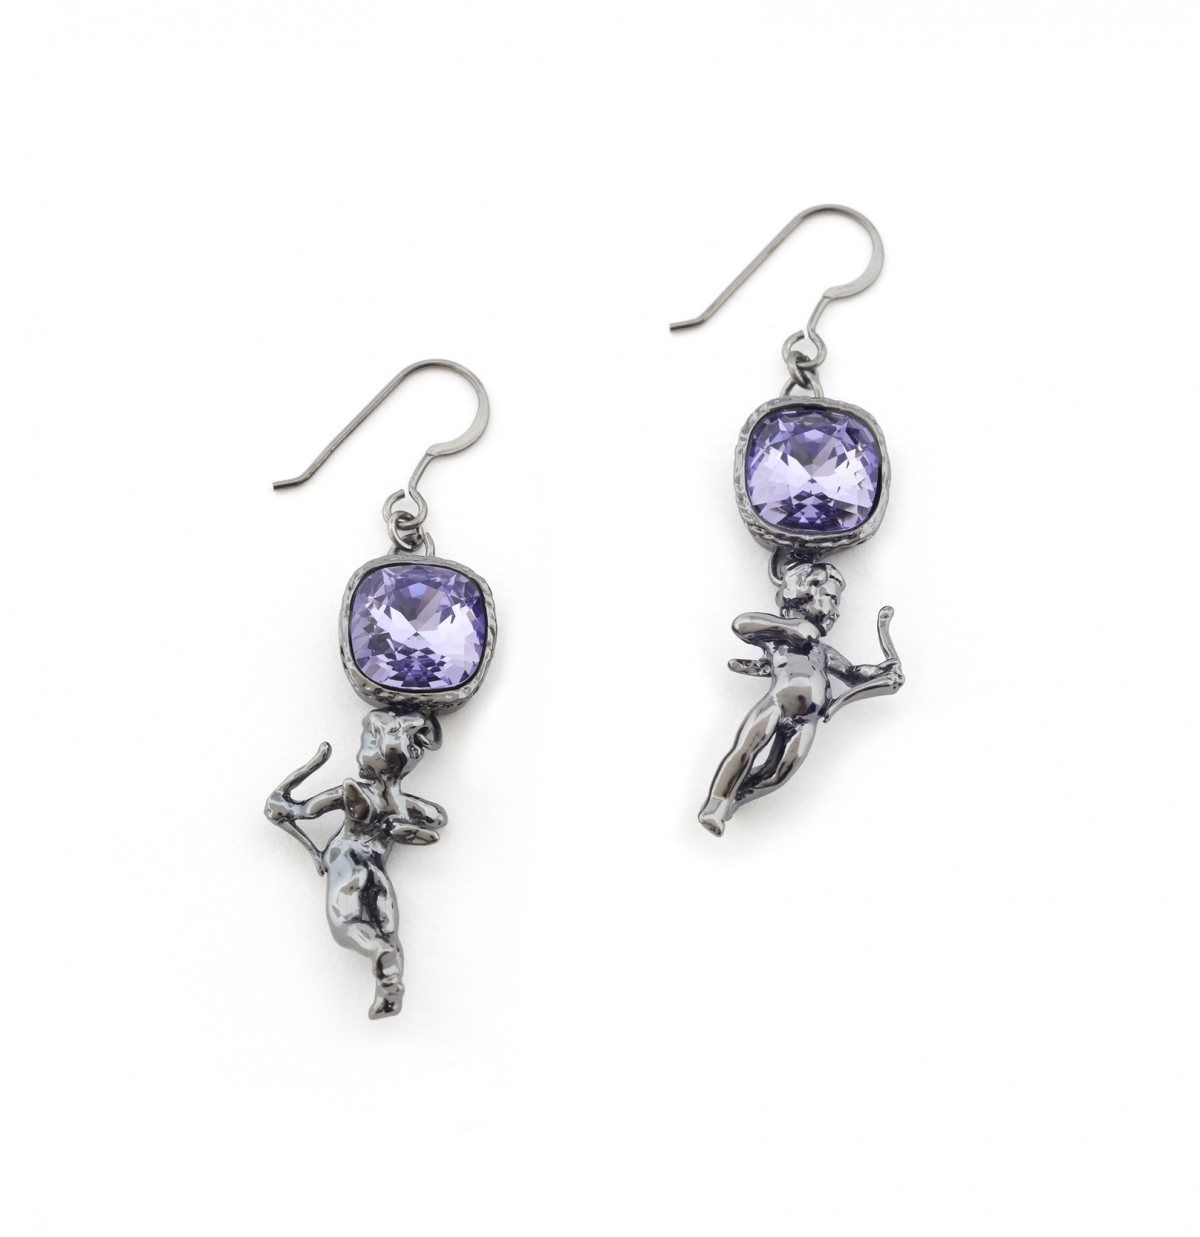 Mini Cherub Crystal Earrings (ruthenium)